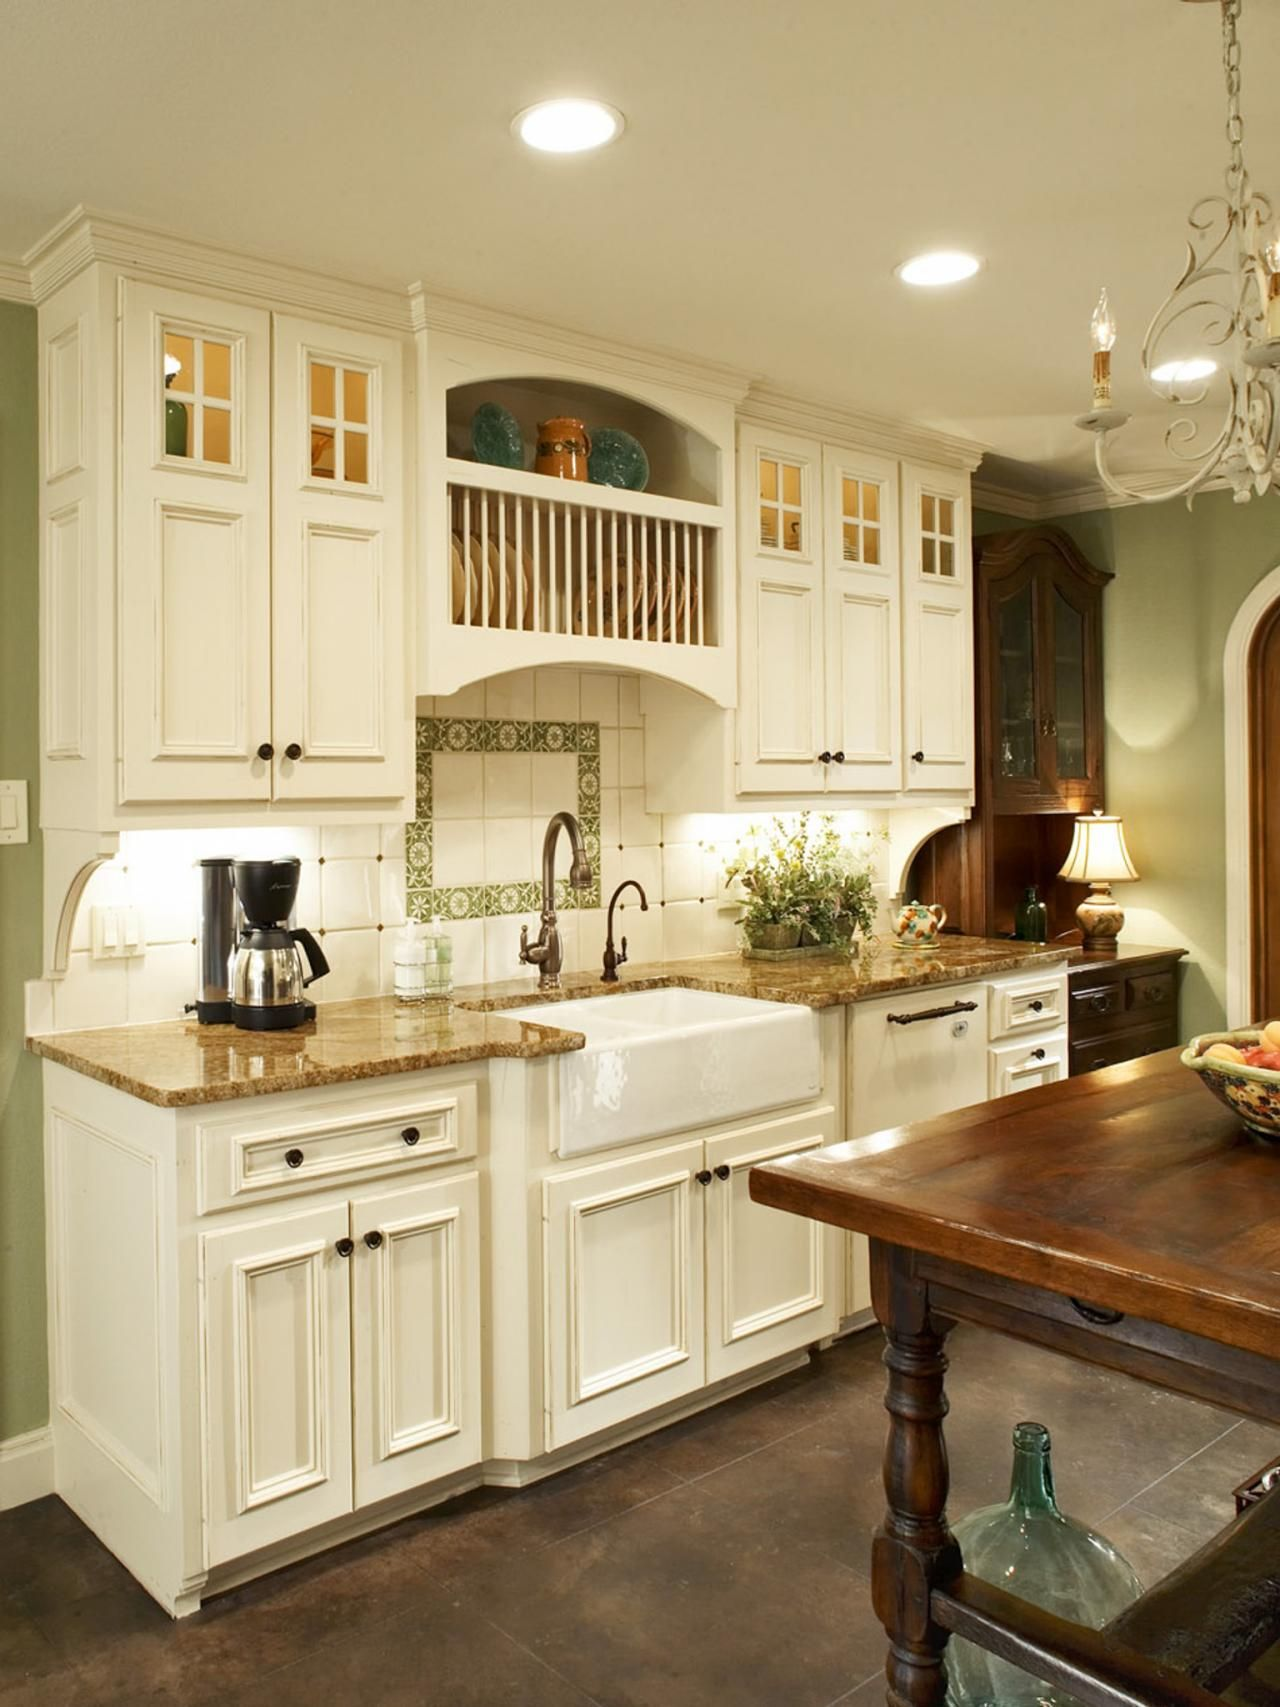 French Country Kitchen Makeover Cottage kitchen